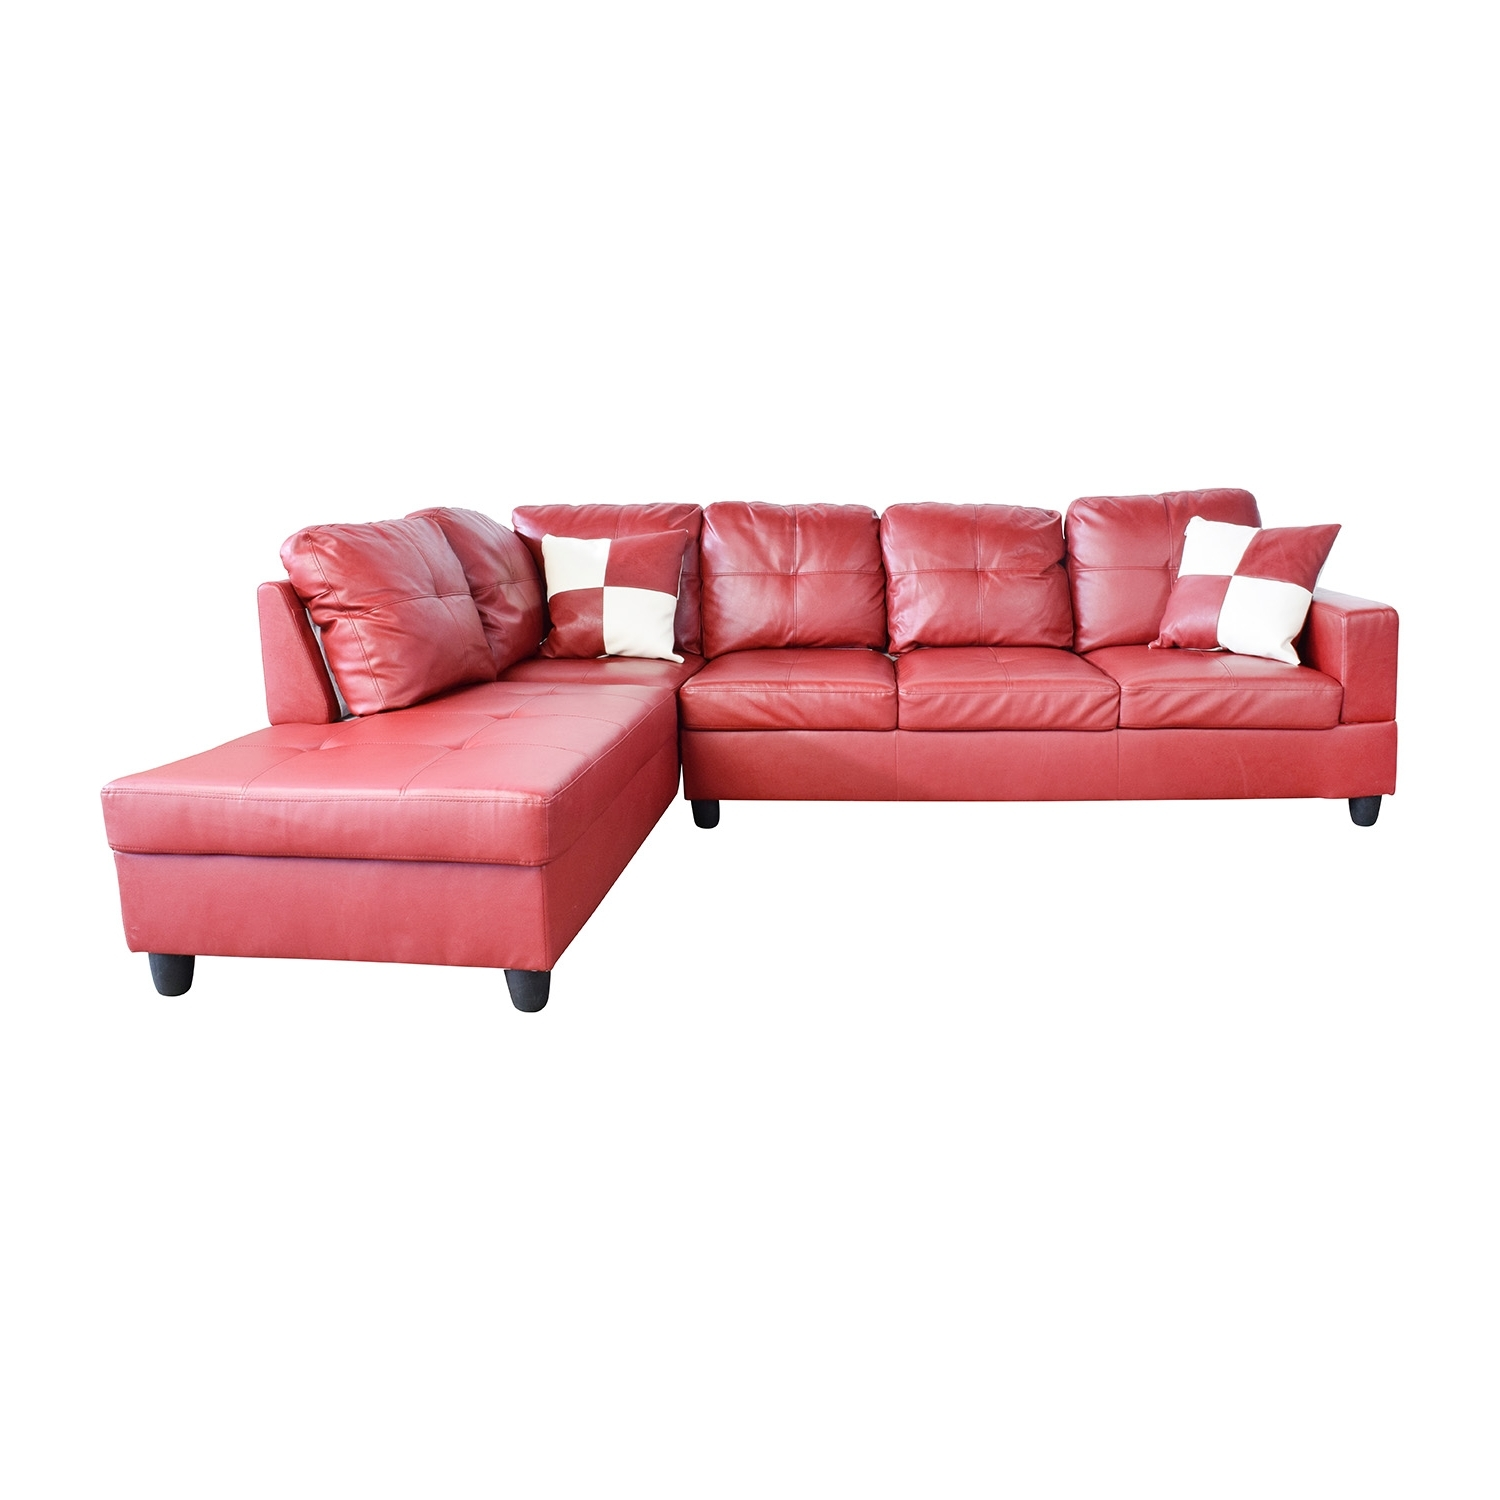 [%76% Off – Beverly Furniture Beverly Furniture Red Faux Leather With Latest Red Faux Leather Sectionals|red Faux Leather Sectionals For Popular 76% Off – Beverly Furniture Beverly Furniture Red Faux Leather|popular Red Faux Leather Sectionals For 76% Off – Beverly Furniture Beverly Furniture Red Faux Leather|most Current 76% Off – Beverly Furniture Beverly Furniture Red Faux Leather Pertaining To Red Faux Leather Sectionals%] (View 14 of 20)